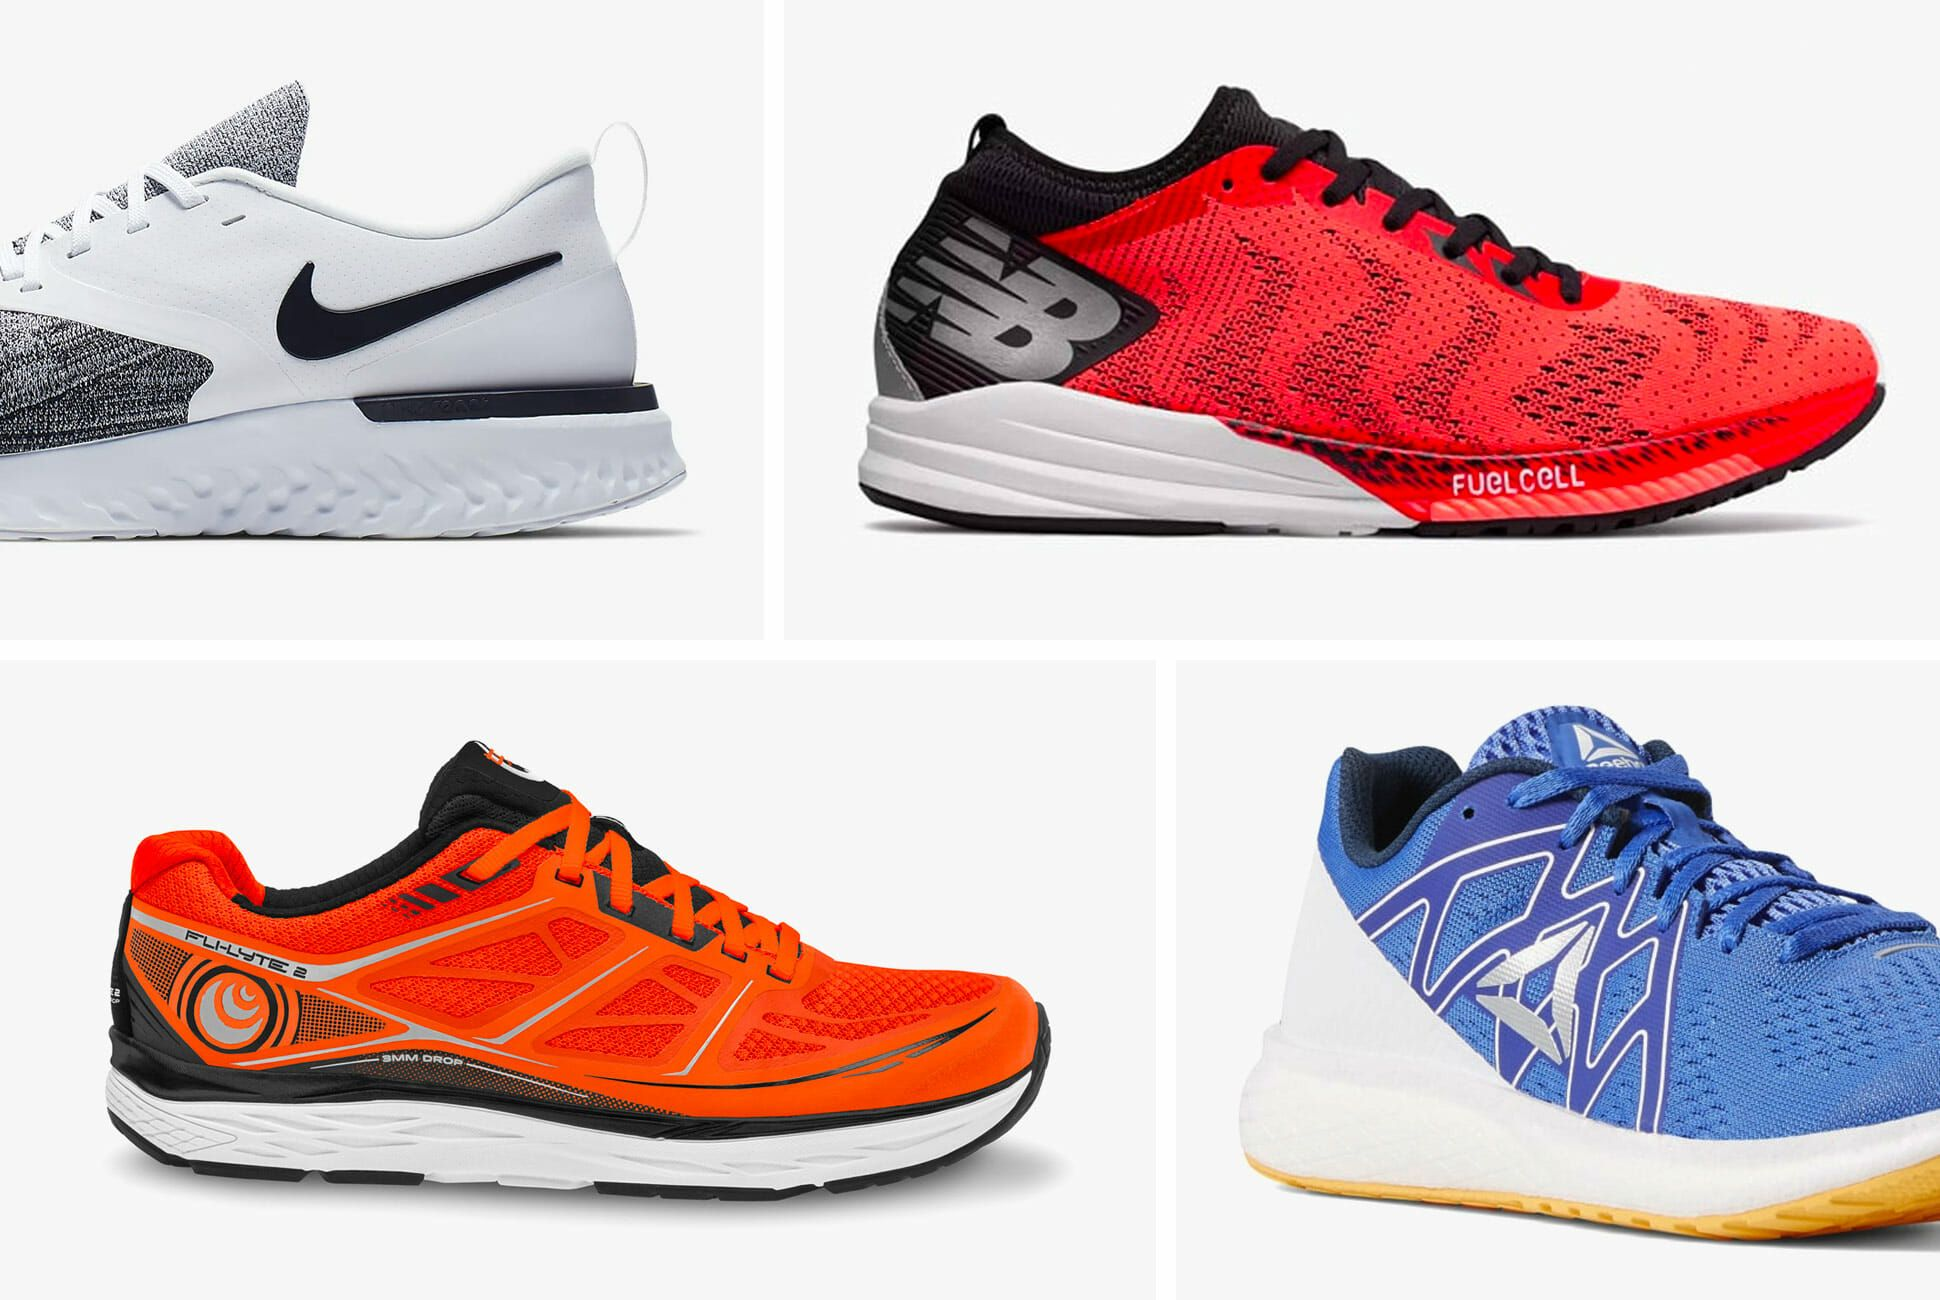 9 Best Budget Sneakers of 2019: All